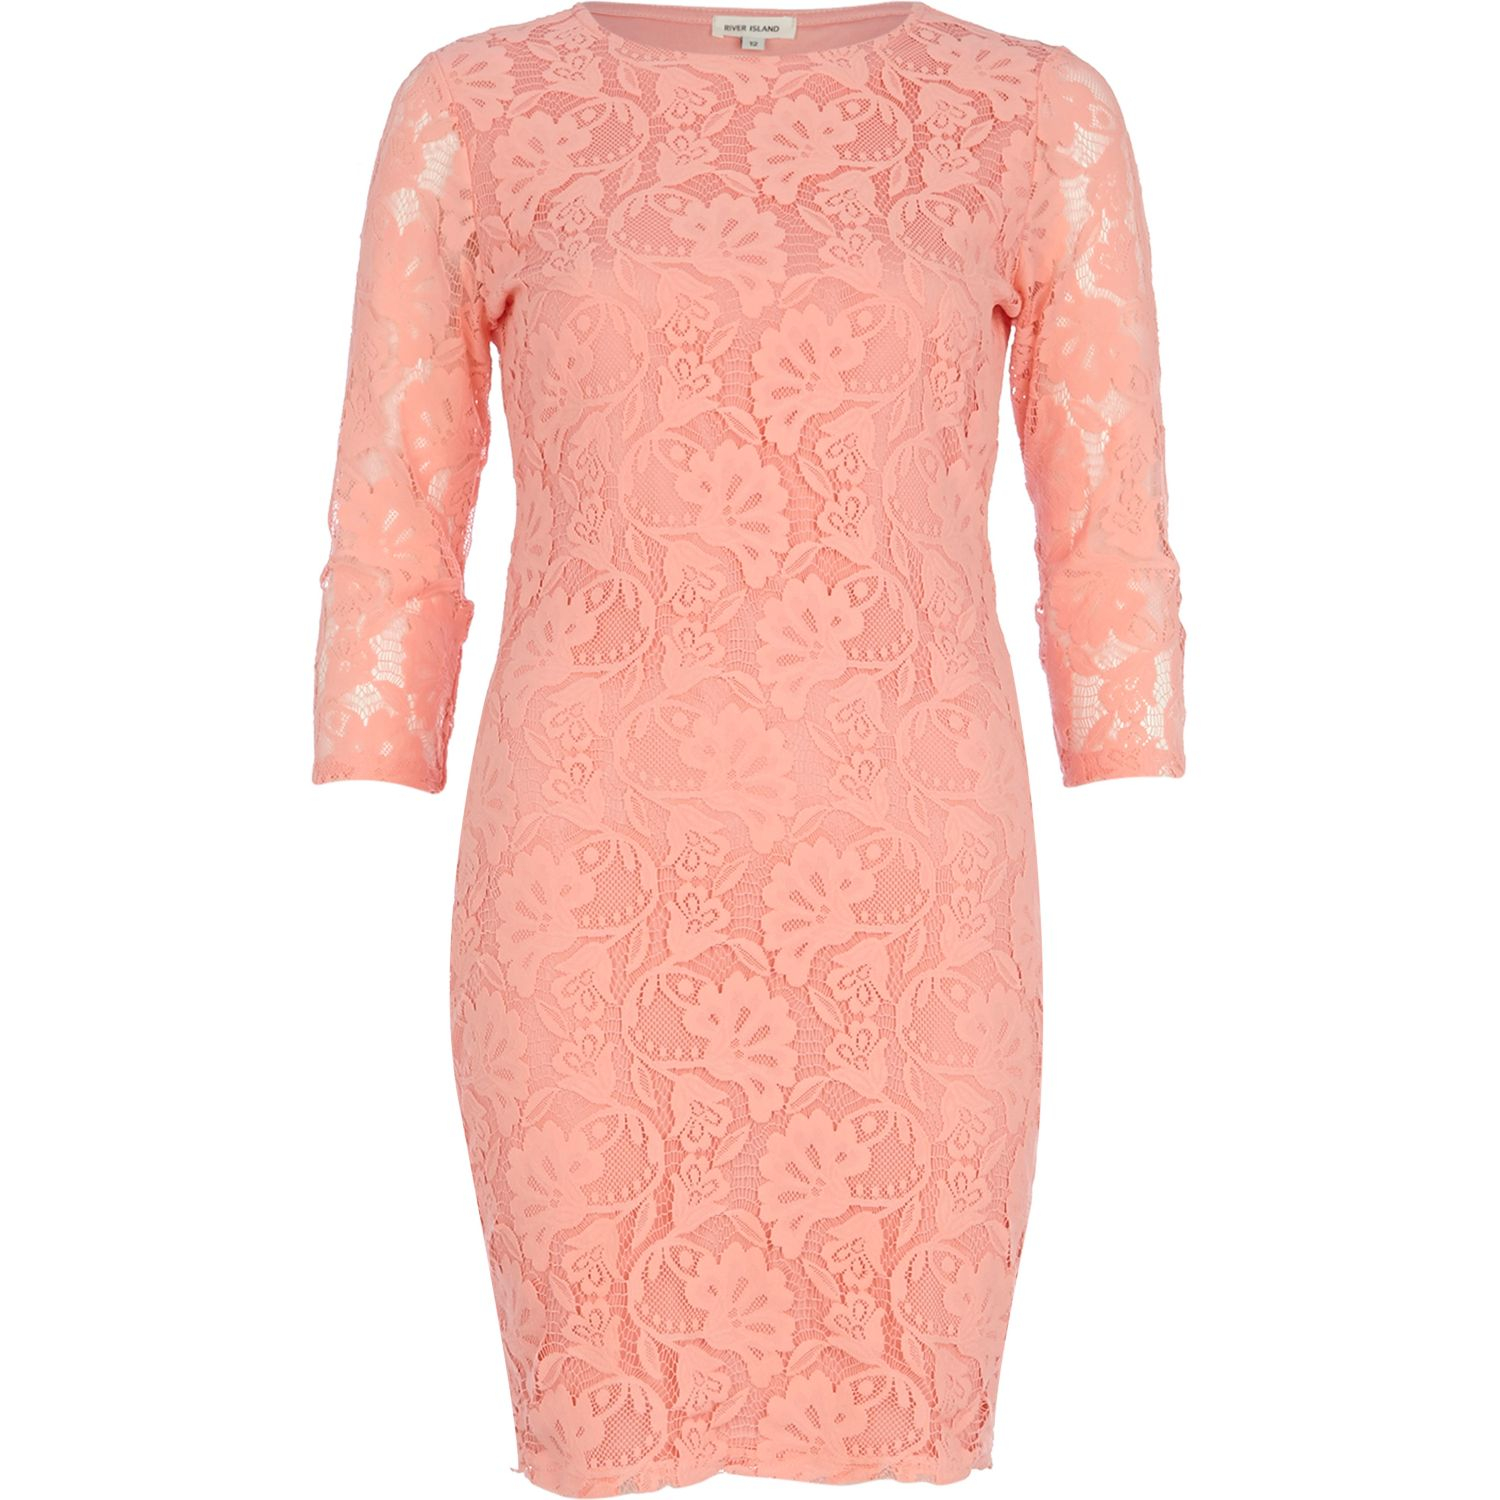 Lace Dress River Island & 20 Great Ideas